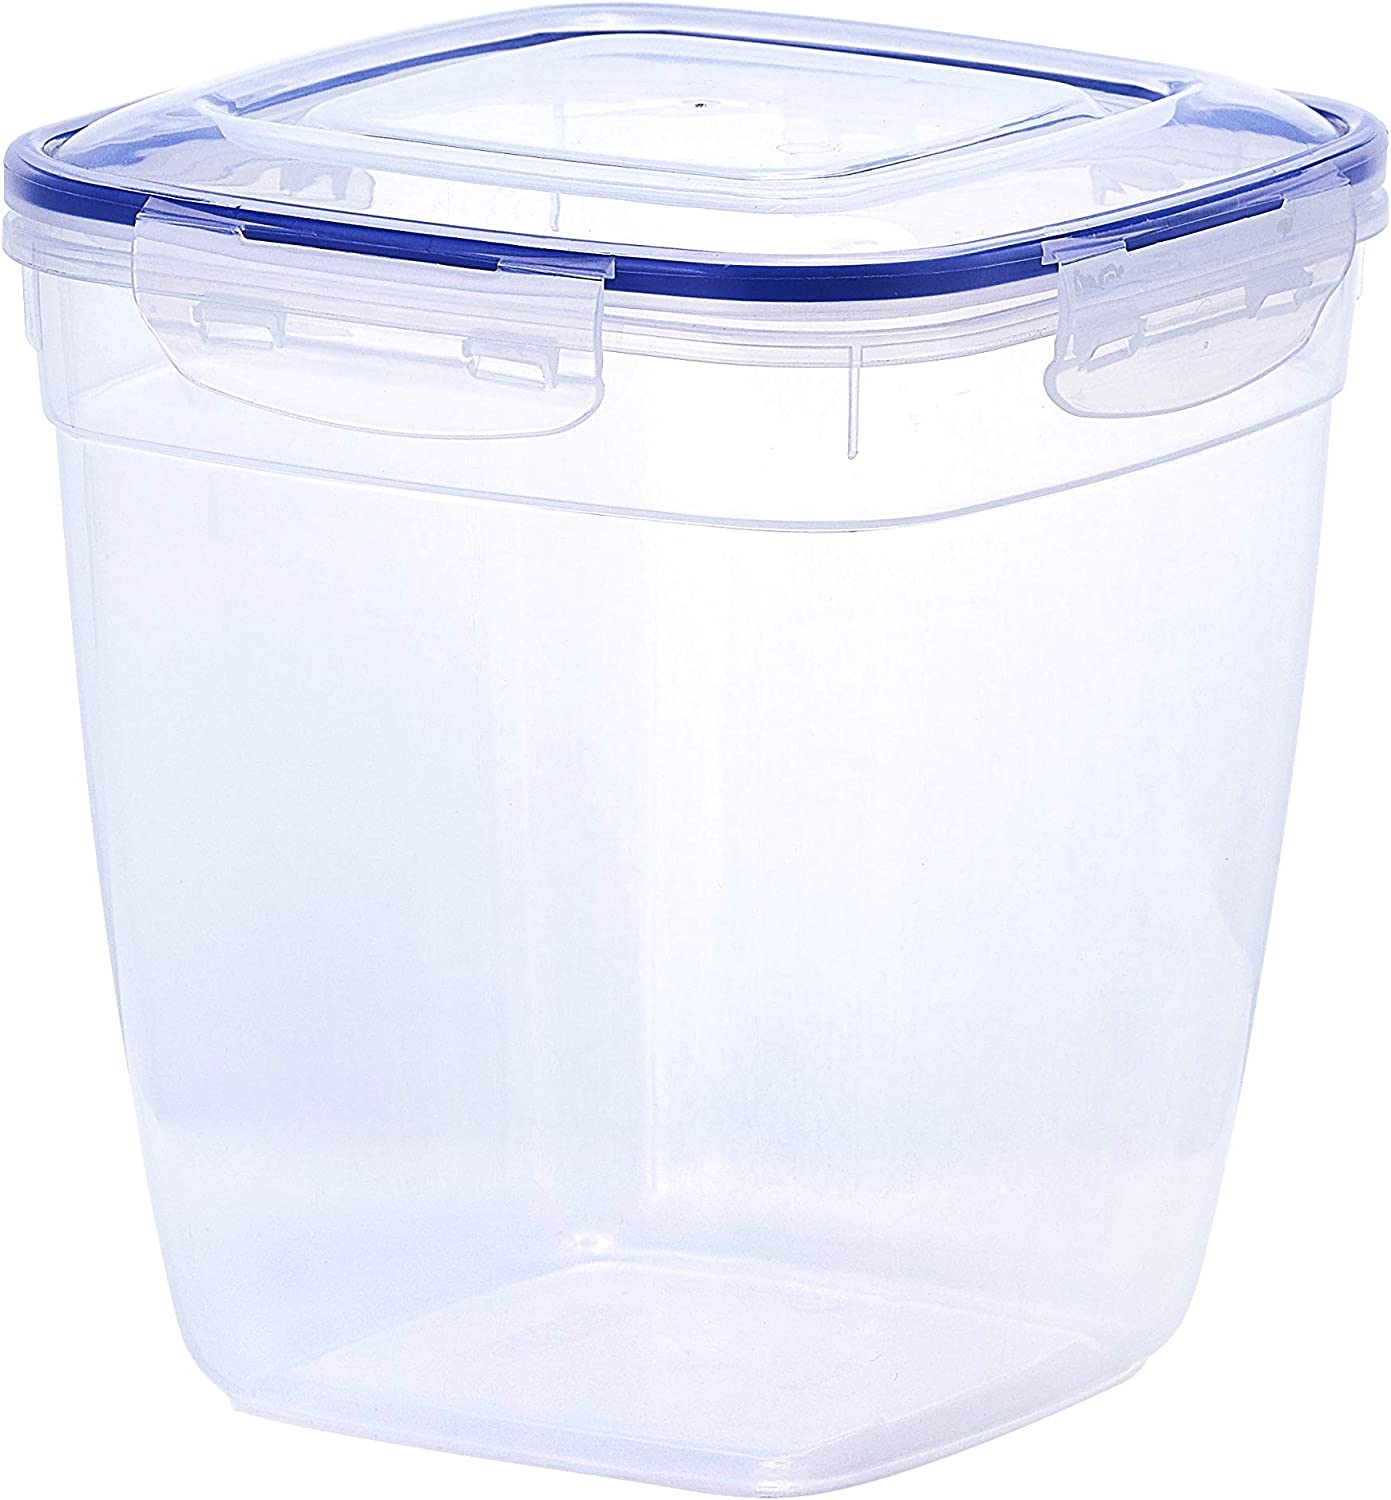 Superio Square Deep Sealed Container For Food (5 Qt.) Plastic Container With Lid Keeps Food Fresh, Perishable, Shelf Stable